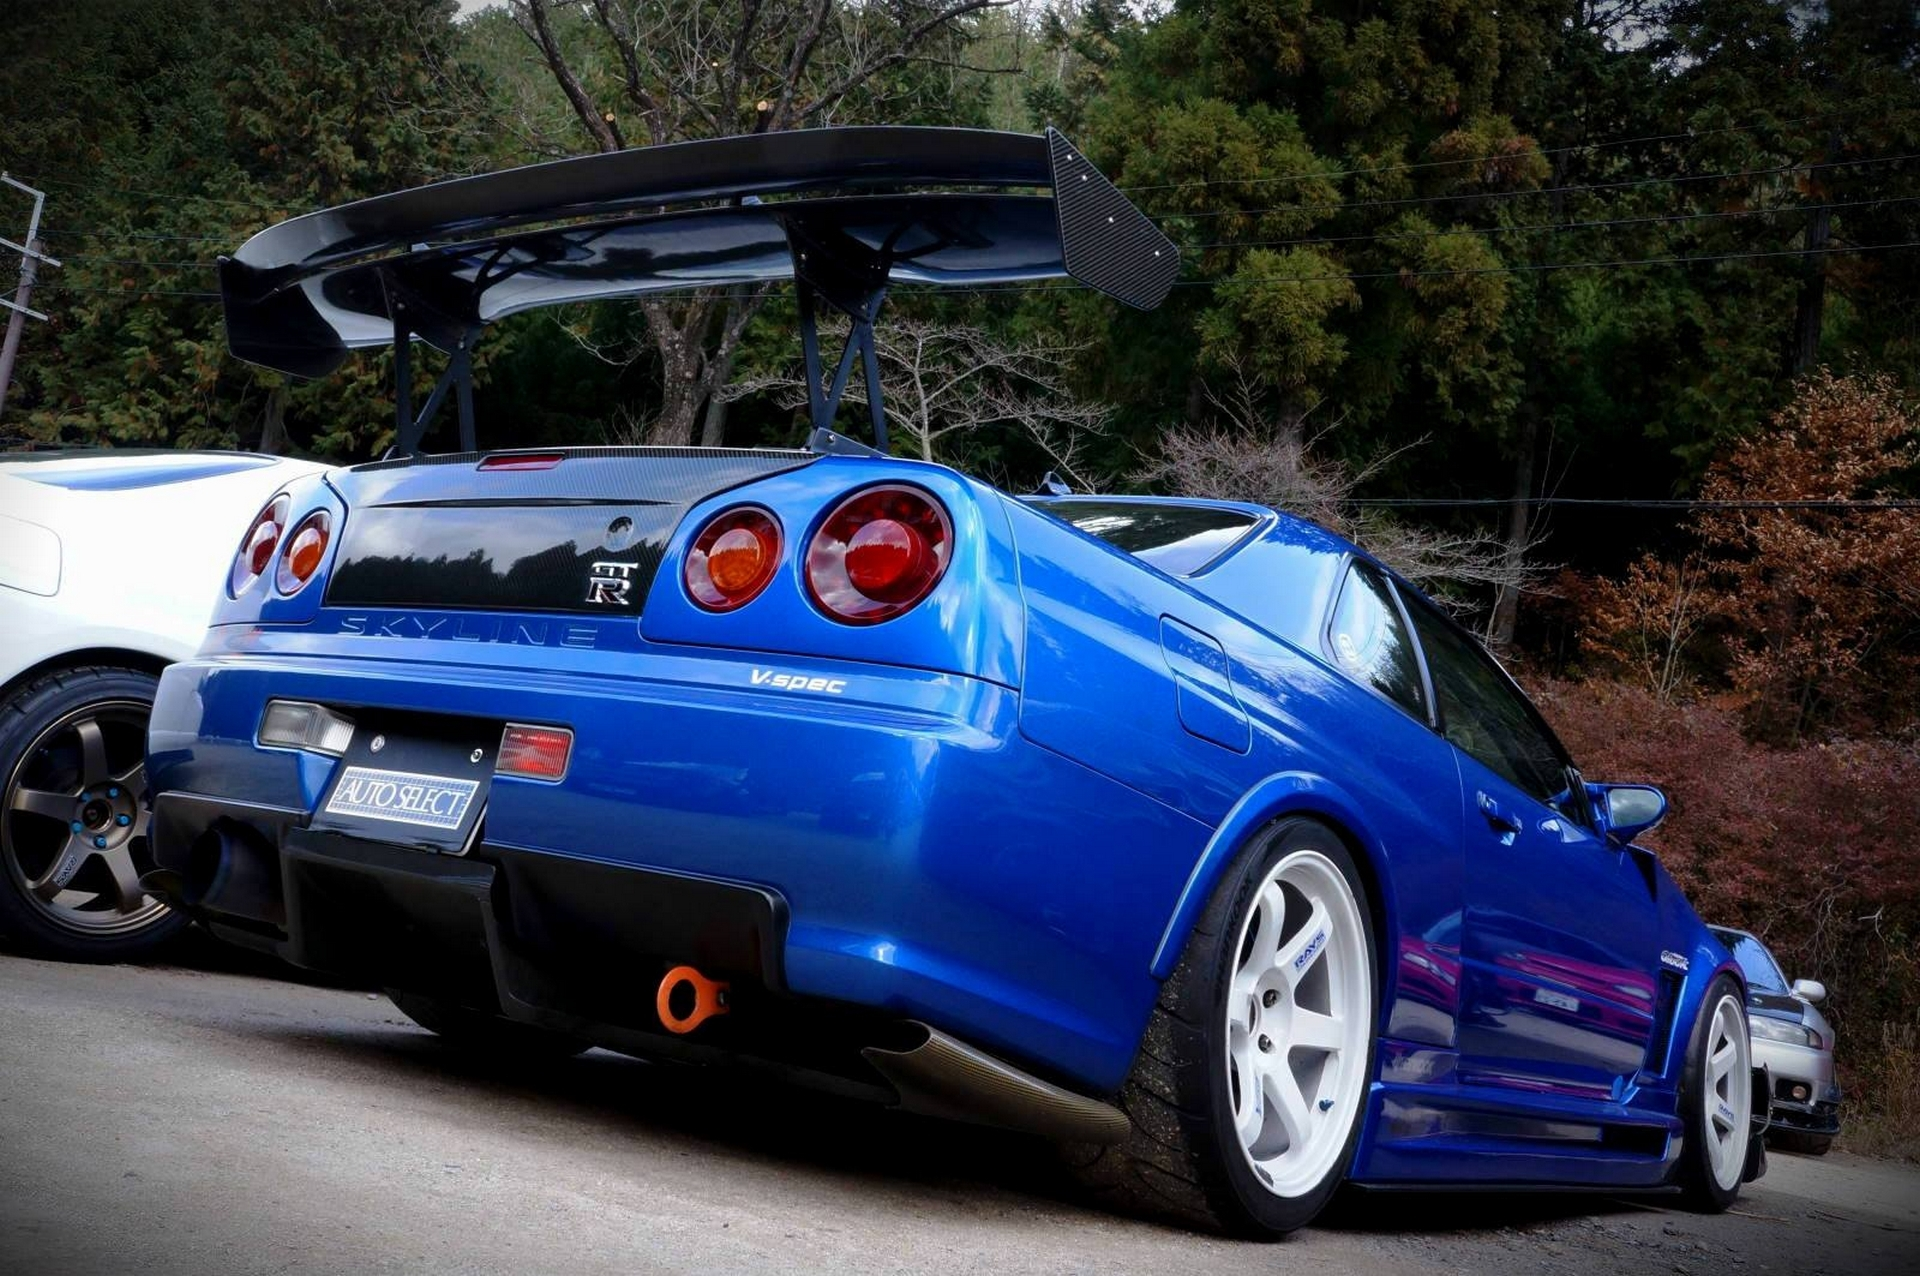 Nissan Skyline R34 Full HD Wallpaper And Background Image